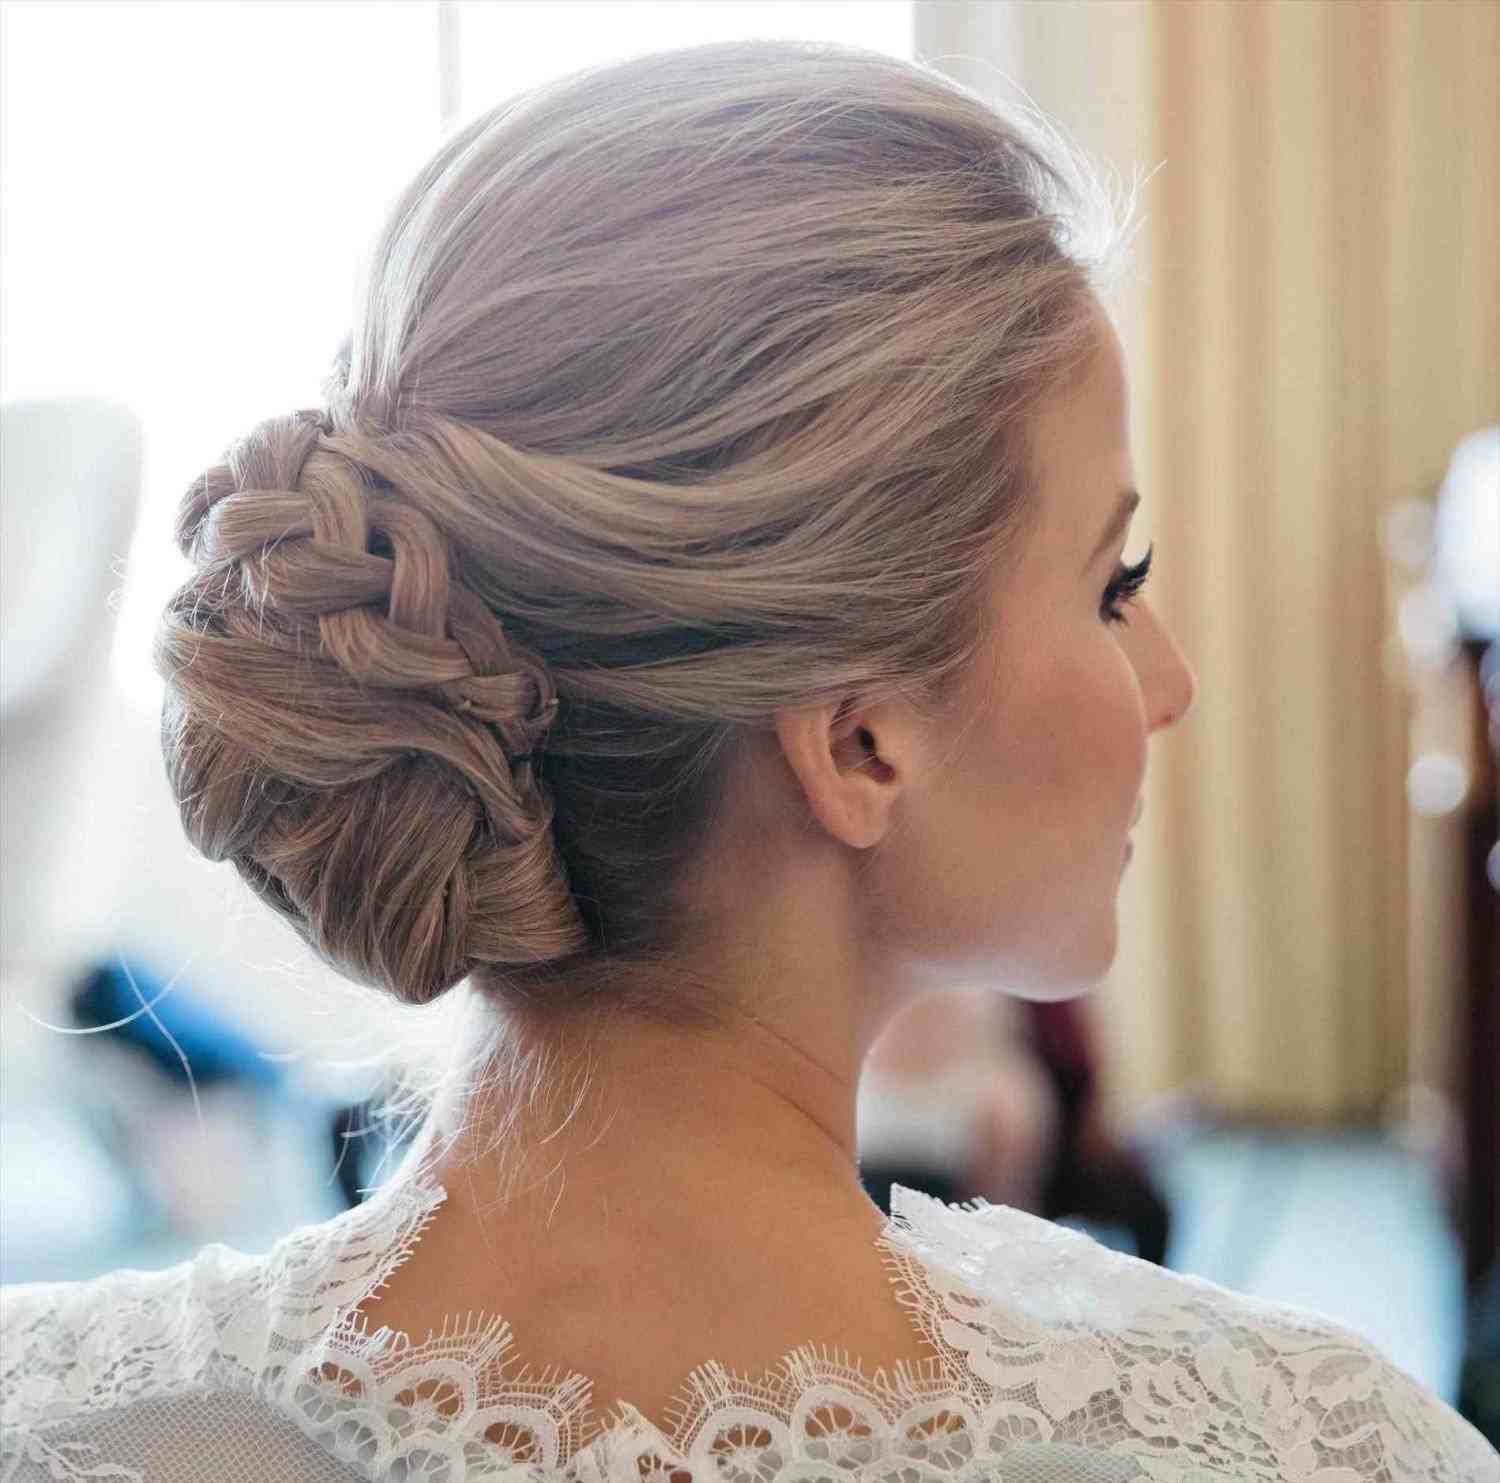 image result for neat and clean updo bridal braid rose and puff